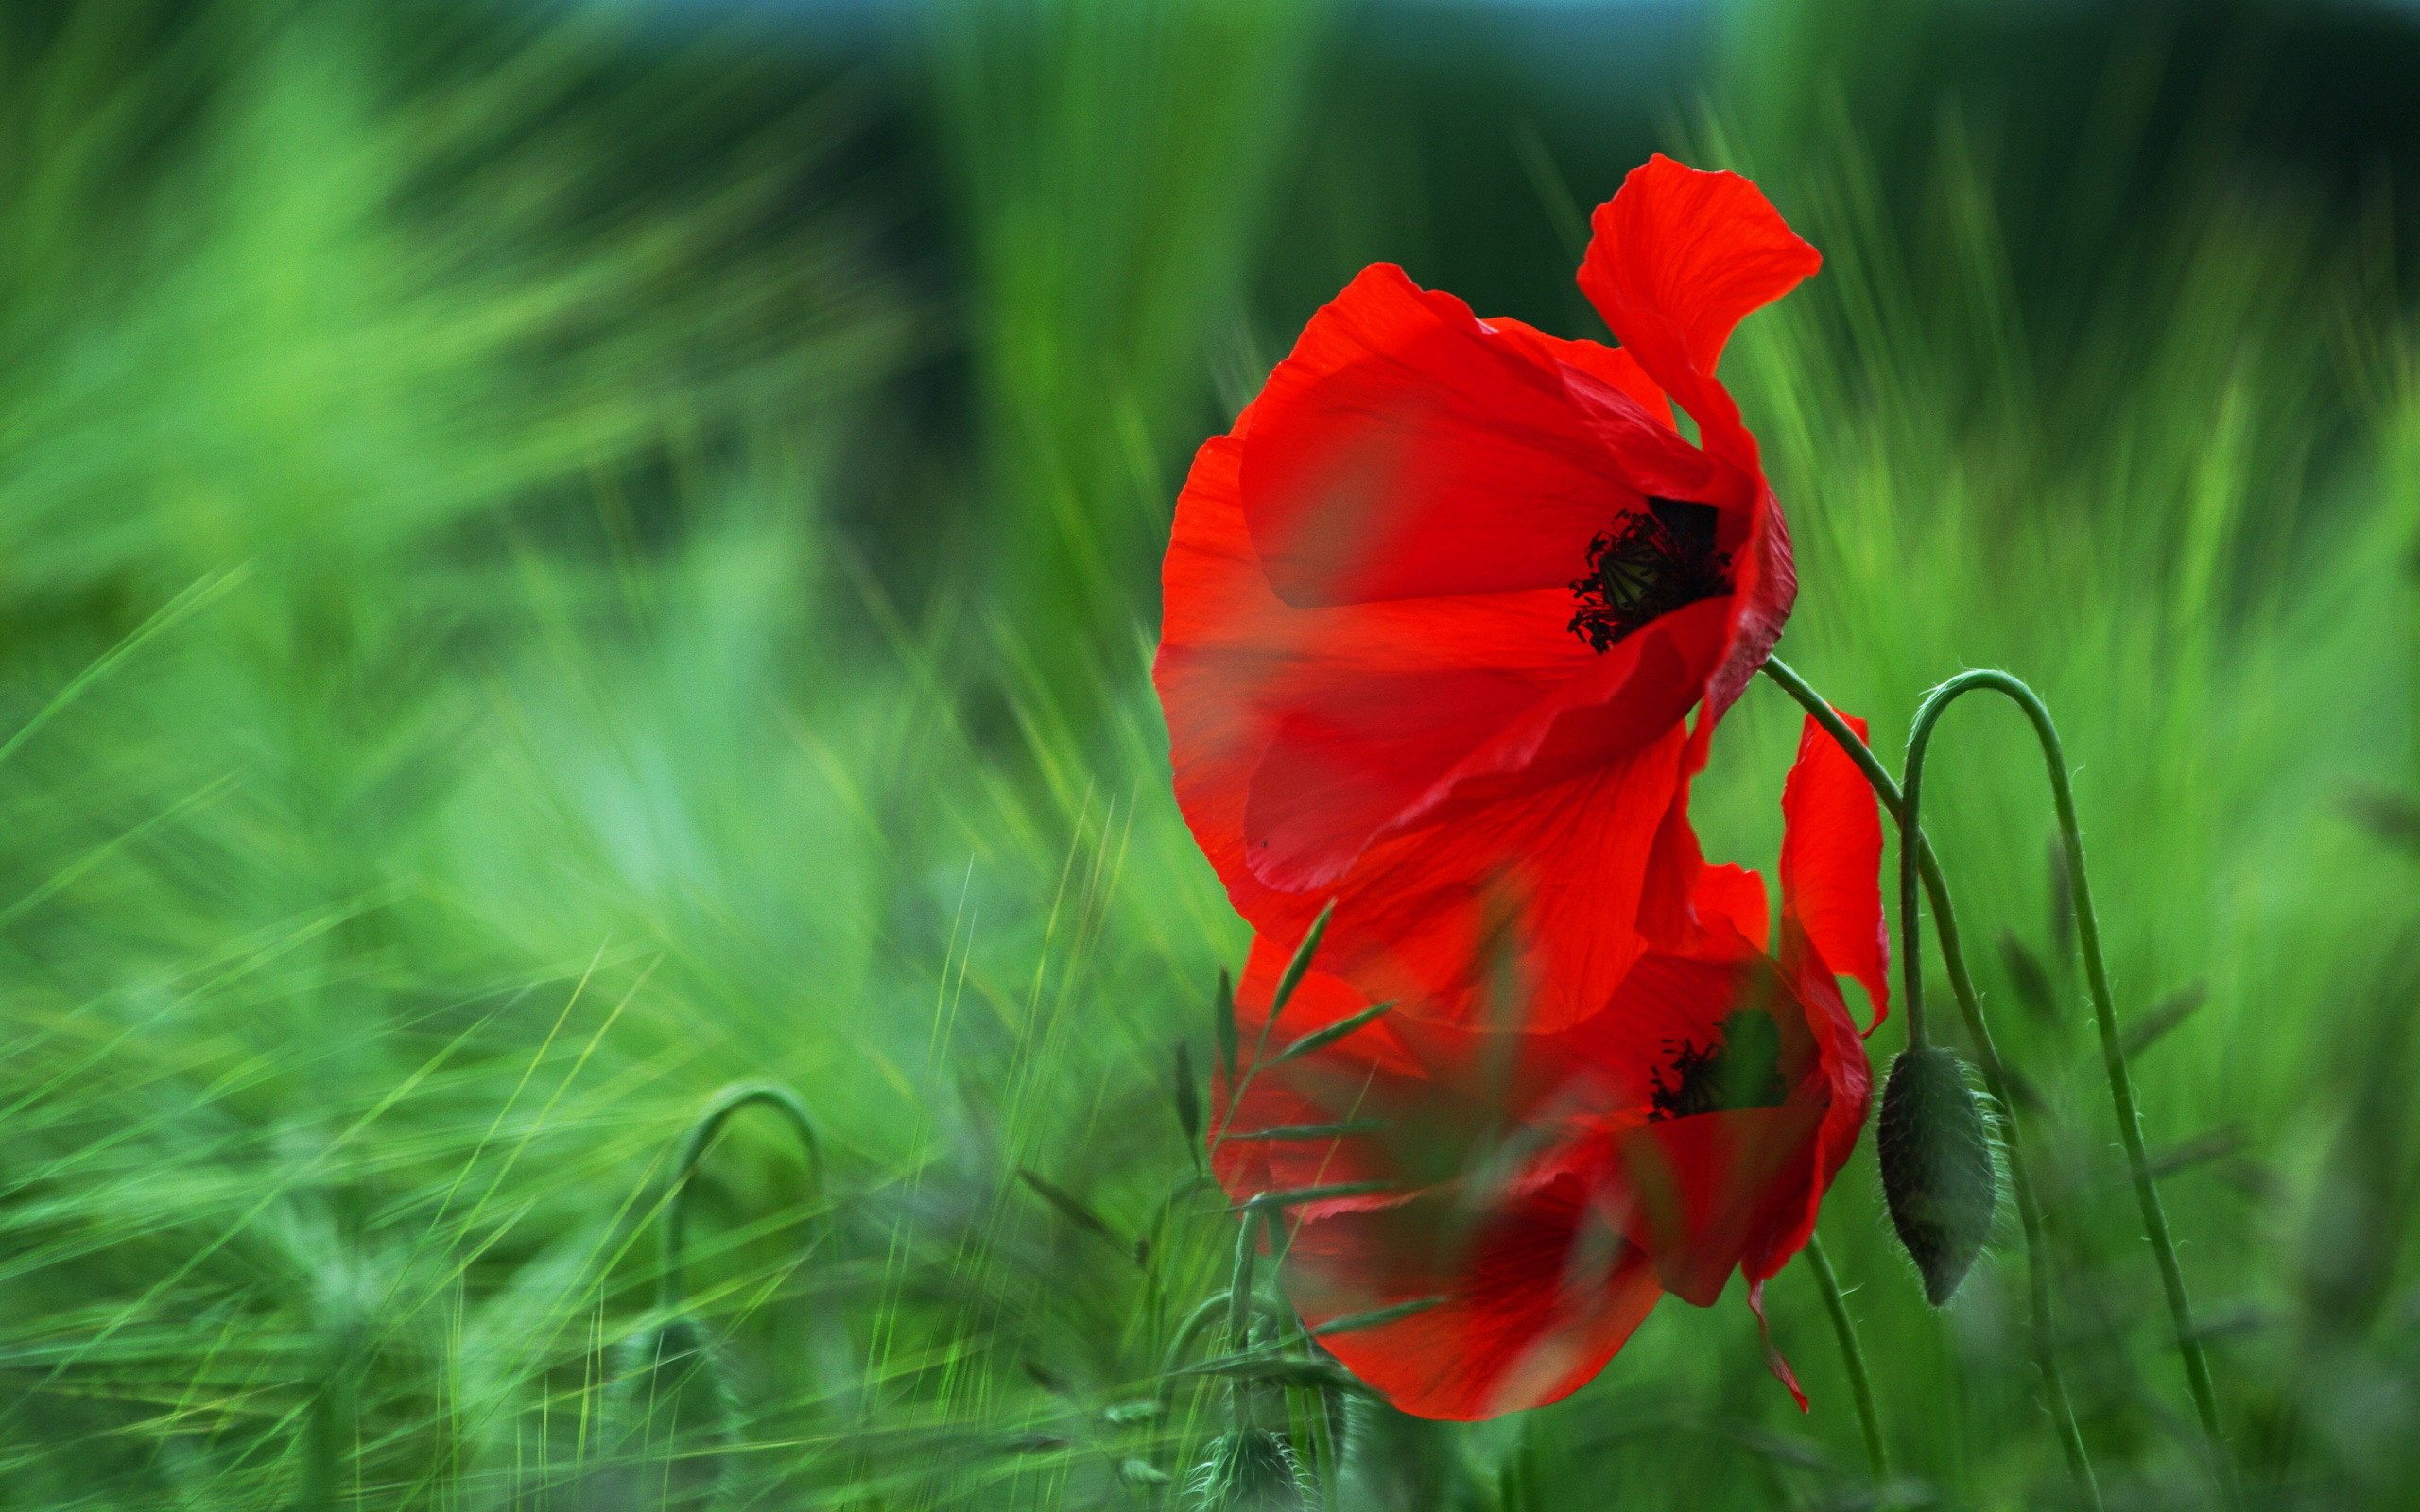 2560x1600 HD Wallpaper | Background Image ID:434174.  Earth Poppy